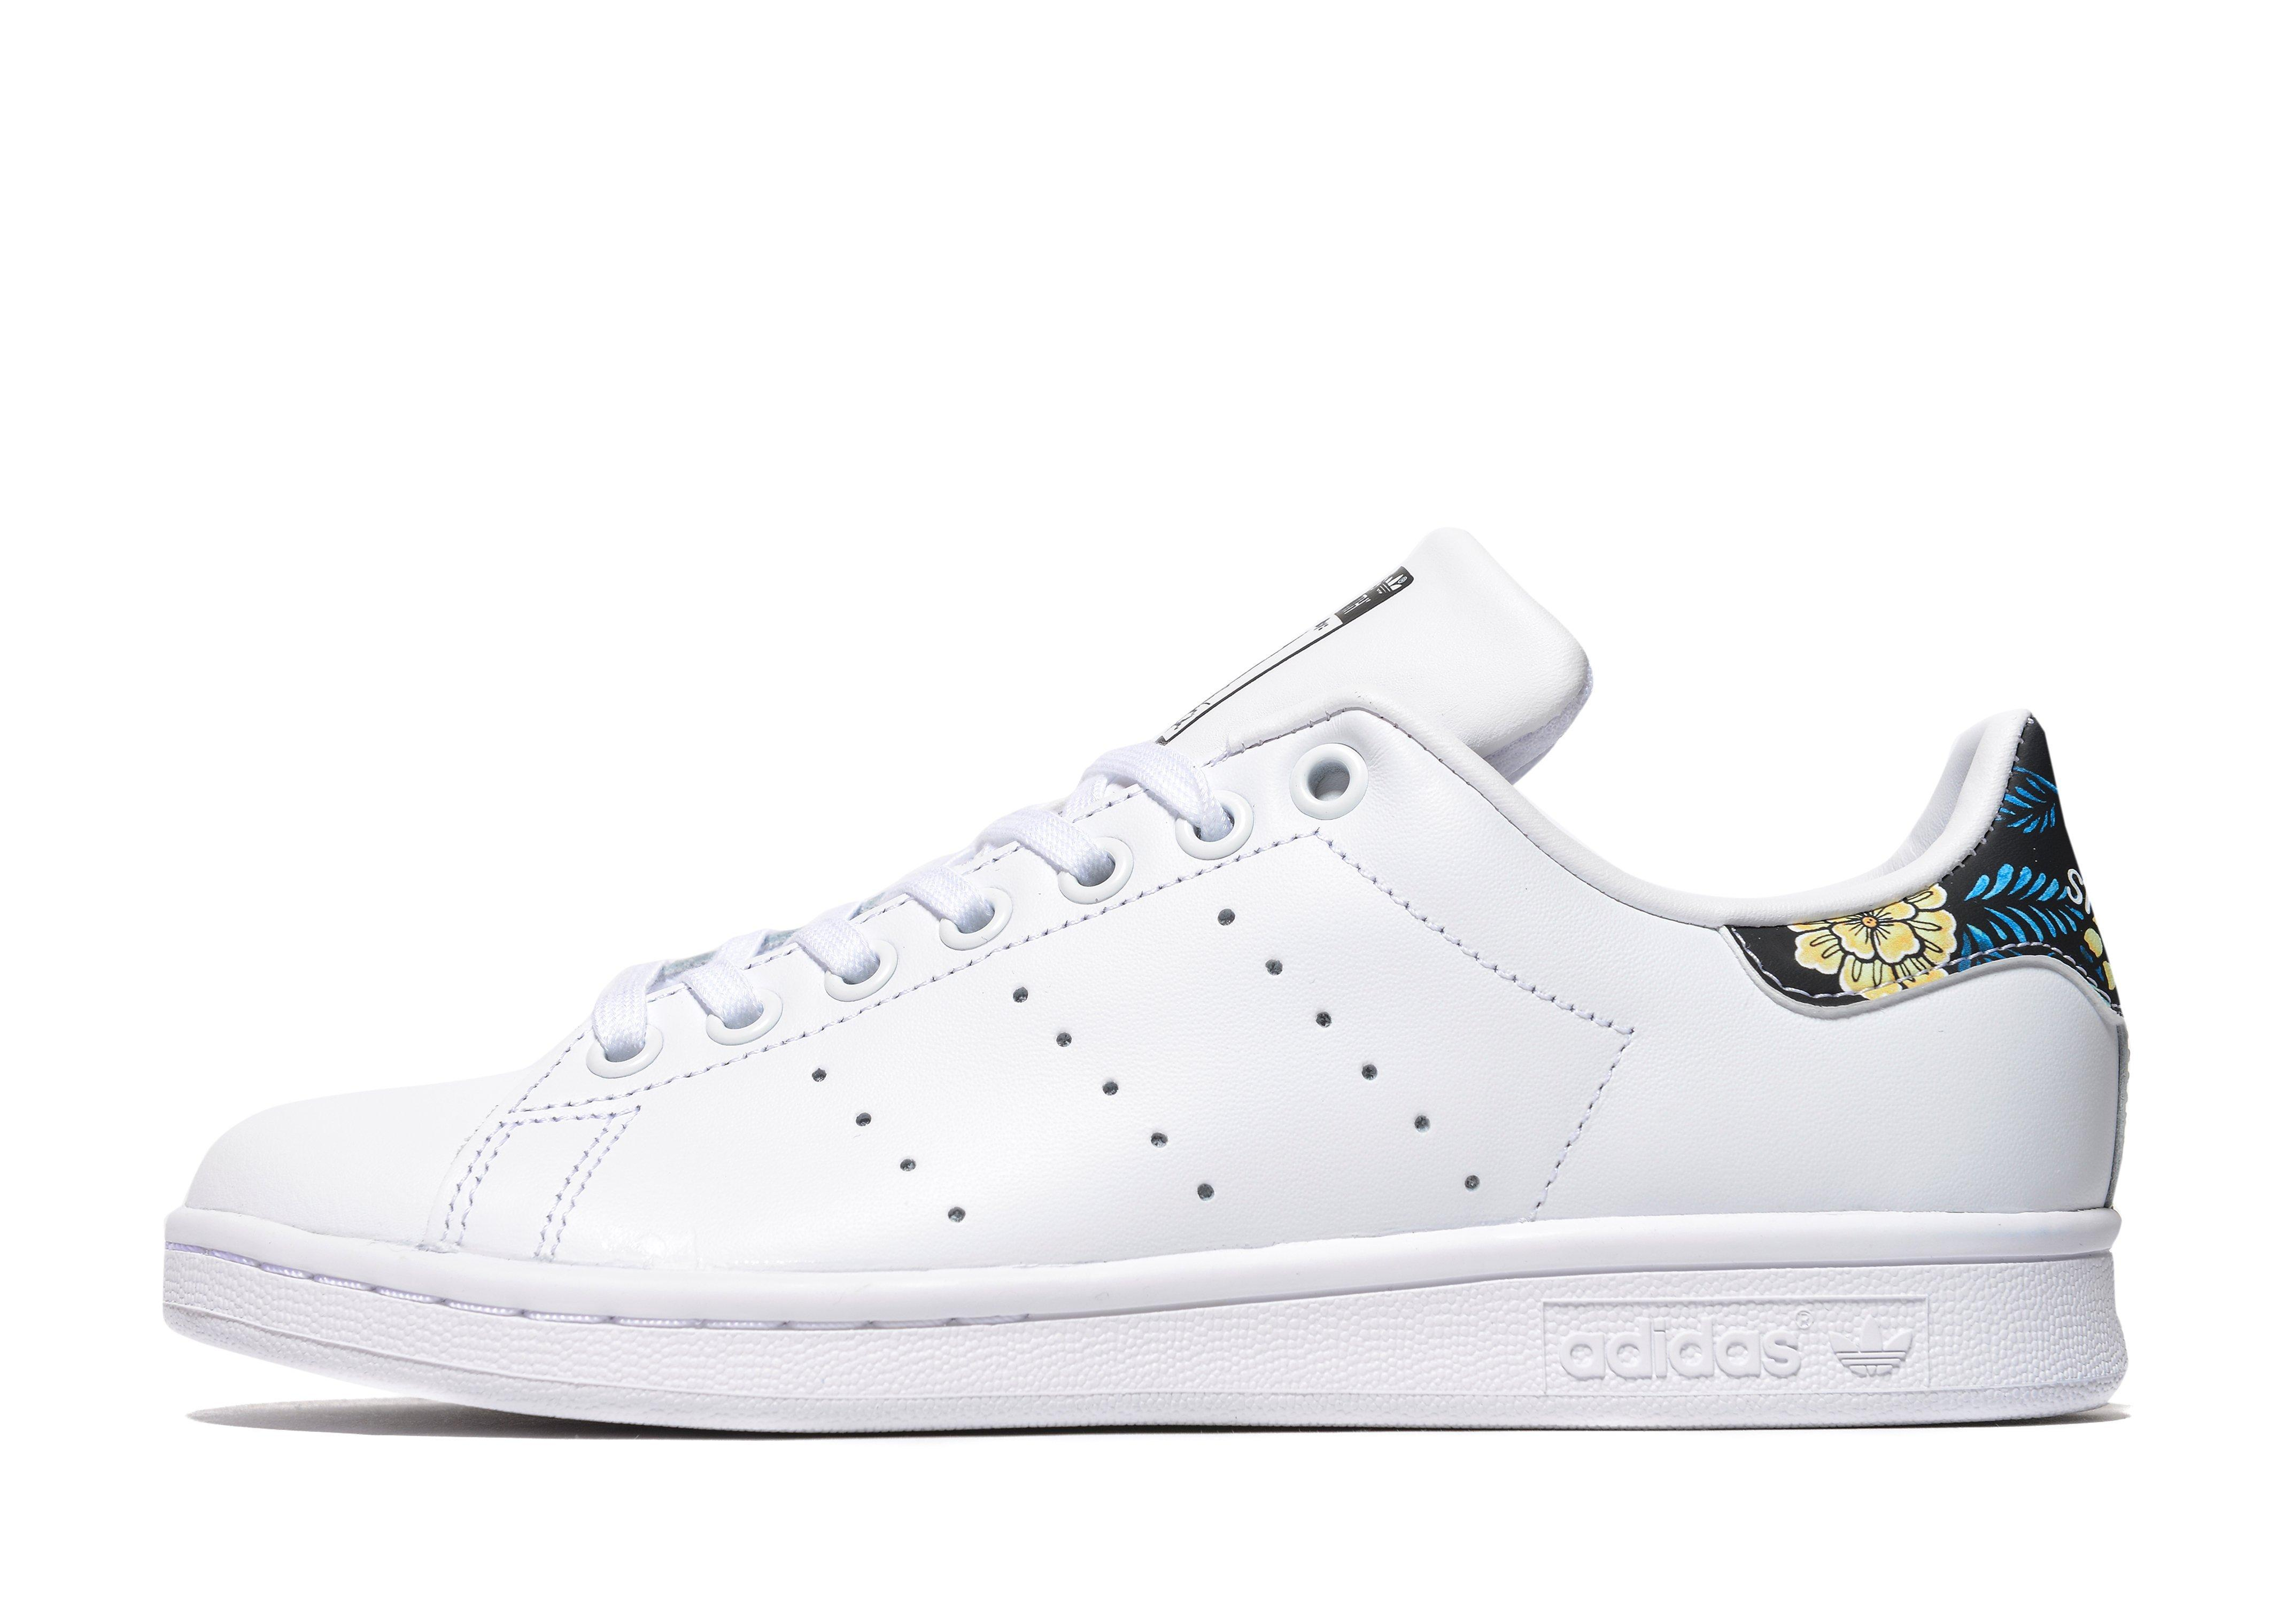 d2fedc15afd32 Gallery. Previously sold at  JD Sports · Women s Adidas Stan Smith Women s  Cream Sneakers ...